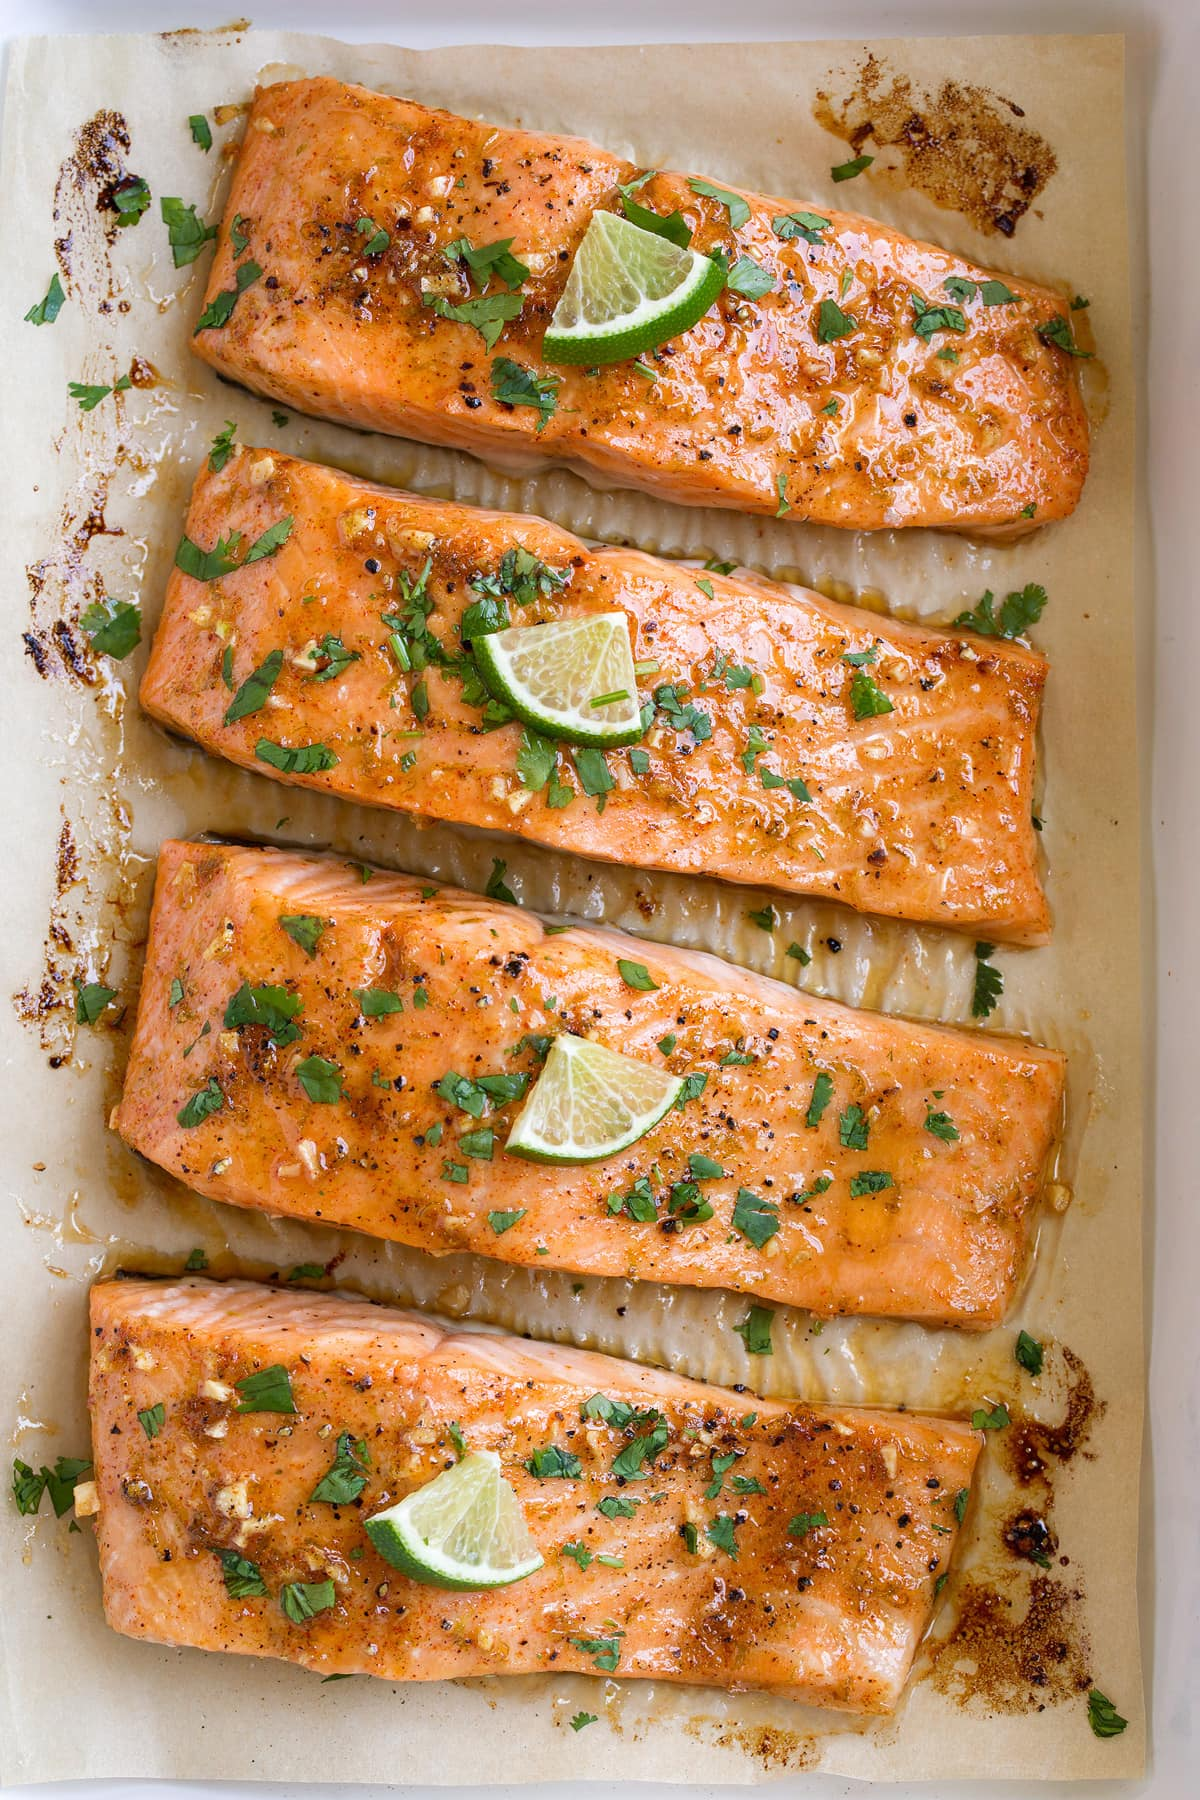 Close up overhead image of row of oven baked salmon fillets.